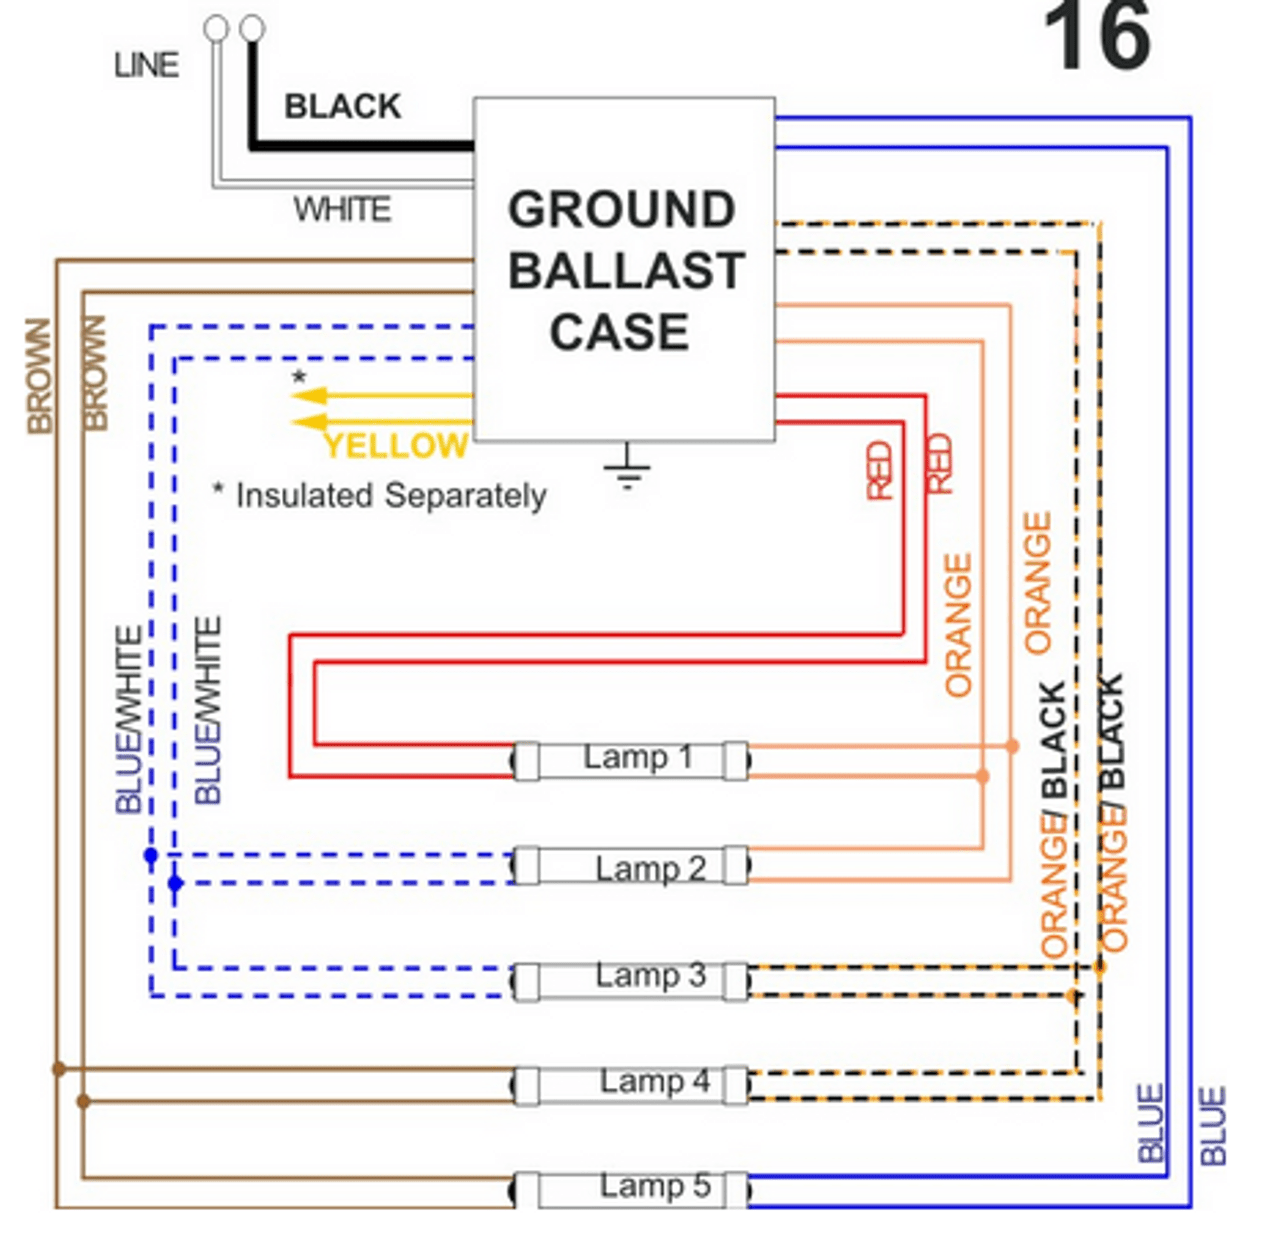 hight resolution of  electronic sign ballast ho wiring diagram online wiring diagram on fluorescent light wiring diagram